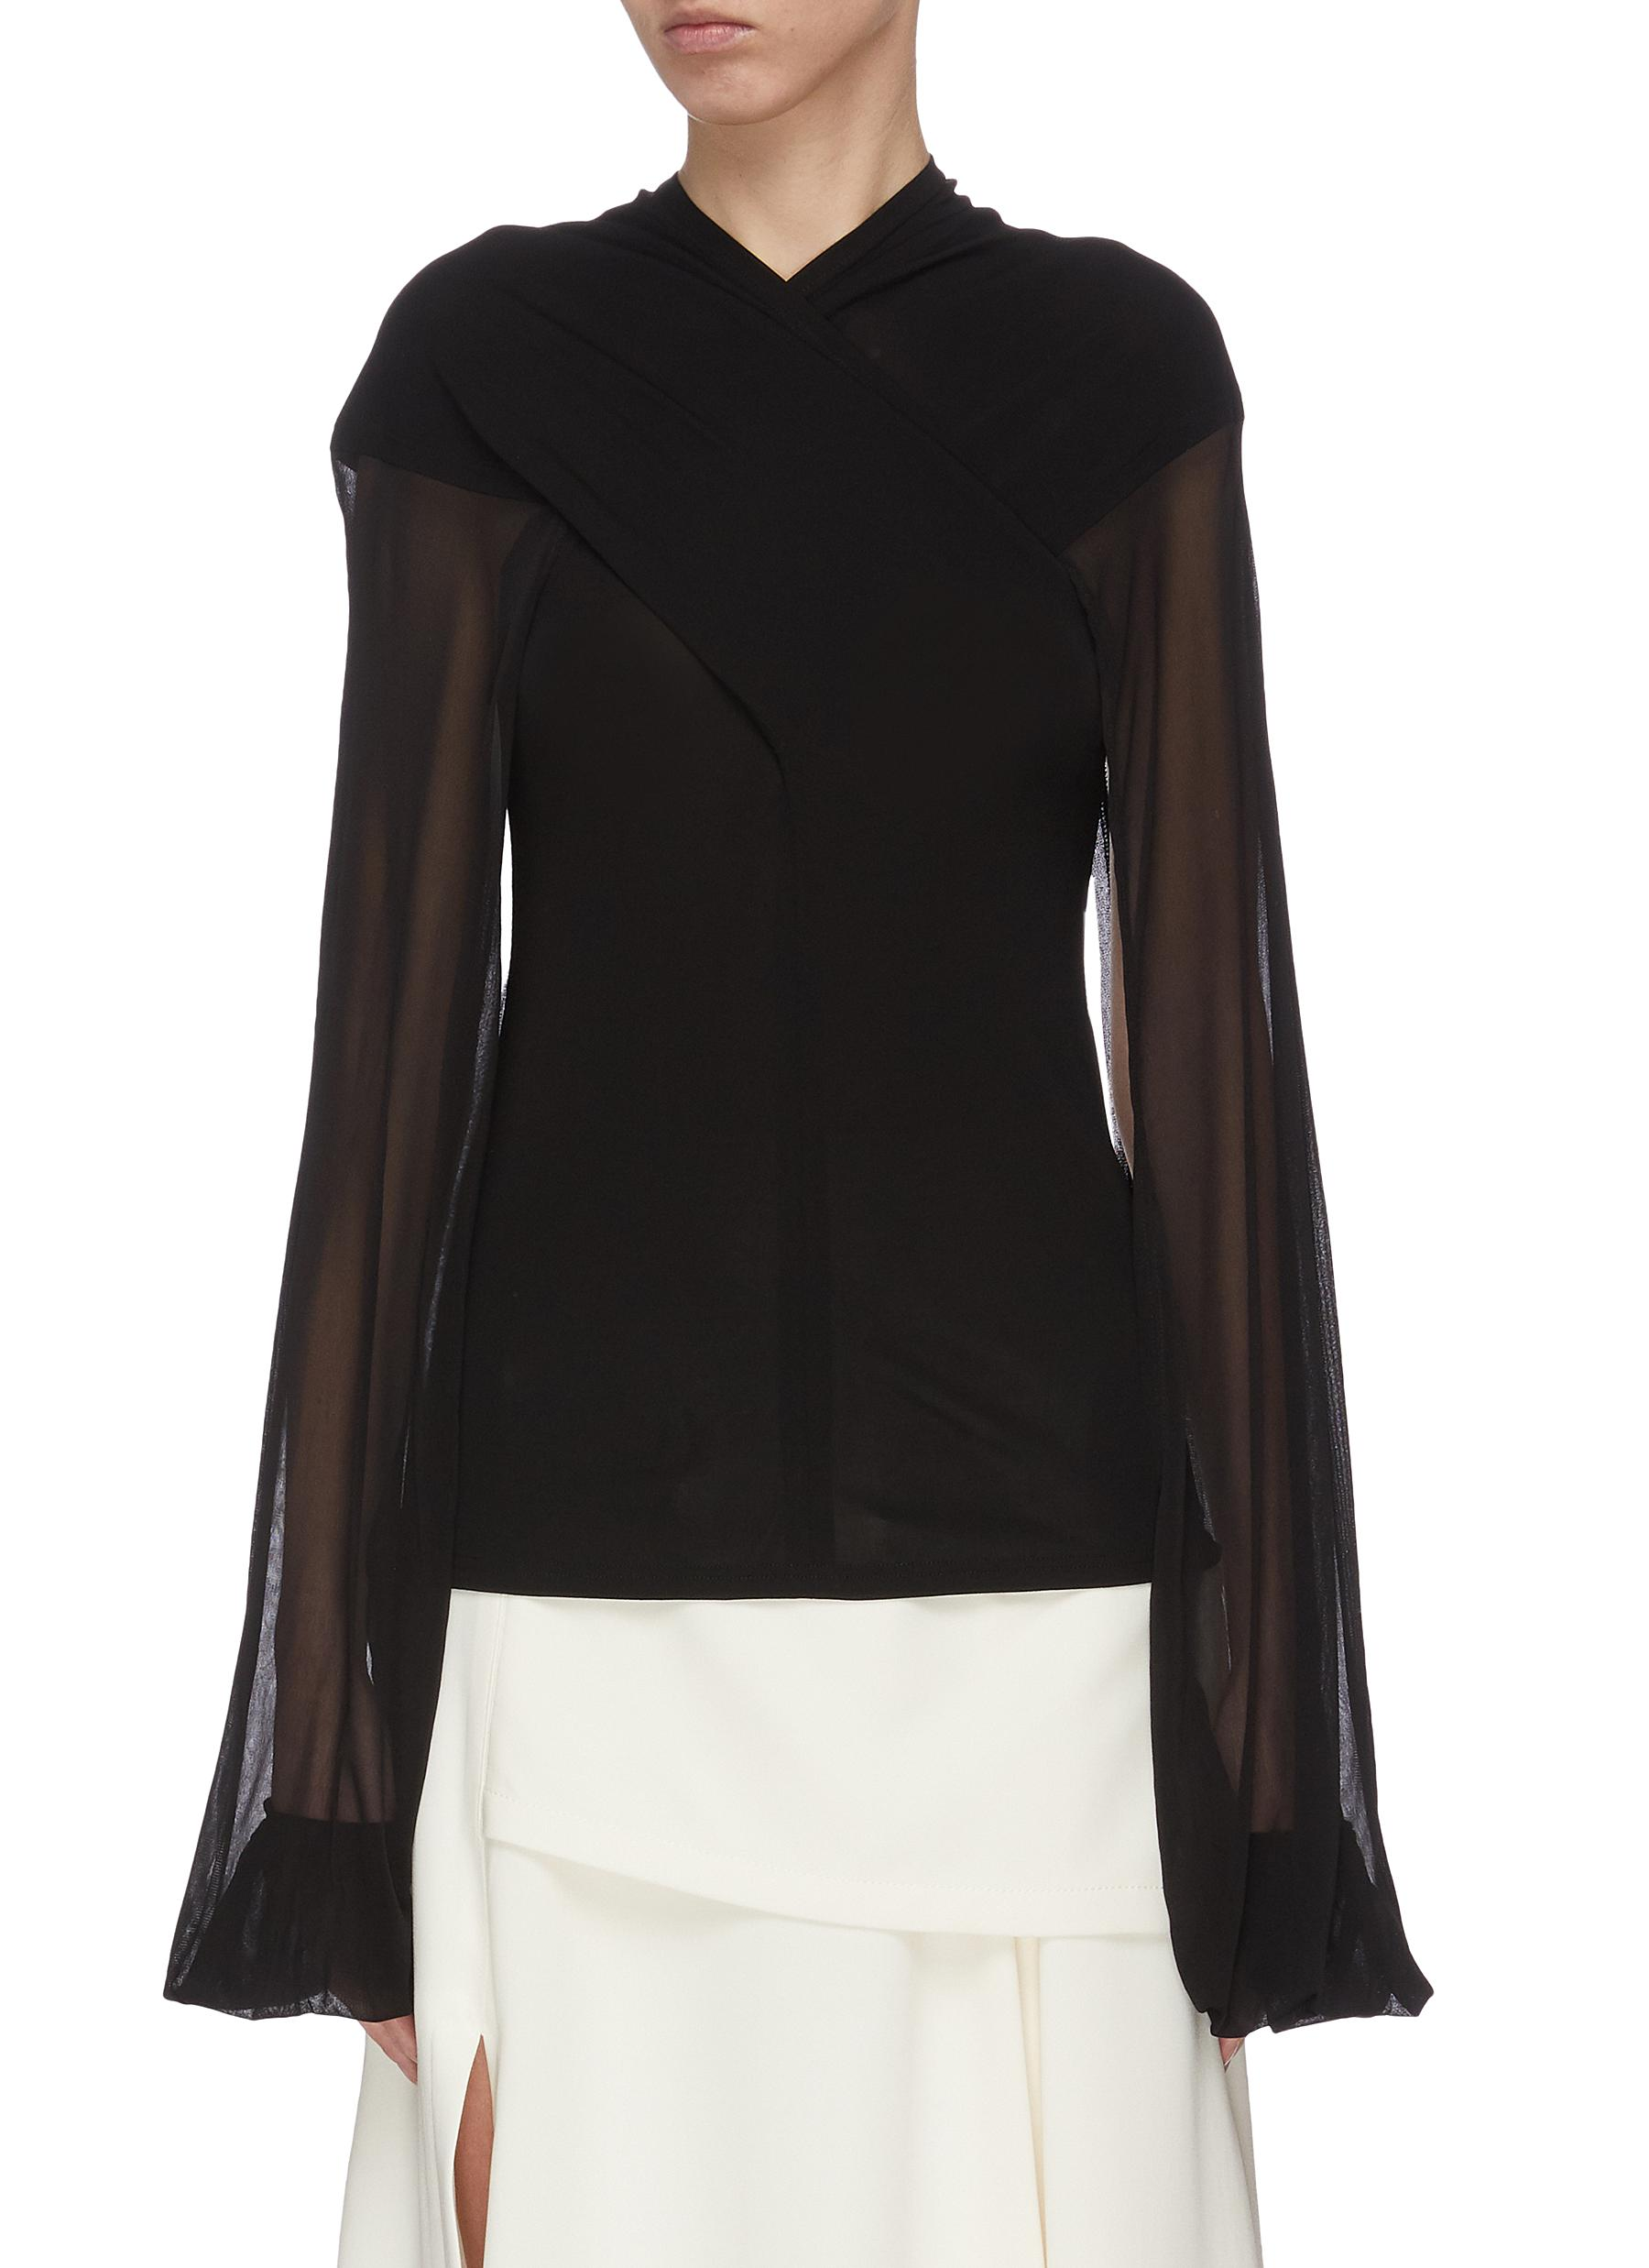 Buy Jw Anderson Tops Sheer sleeve criss cross front top